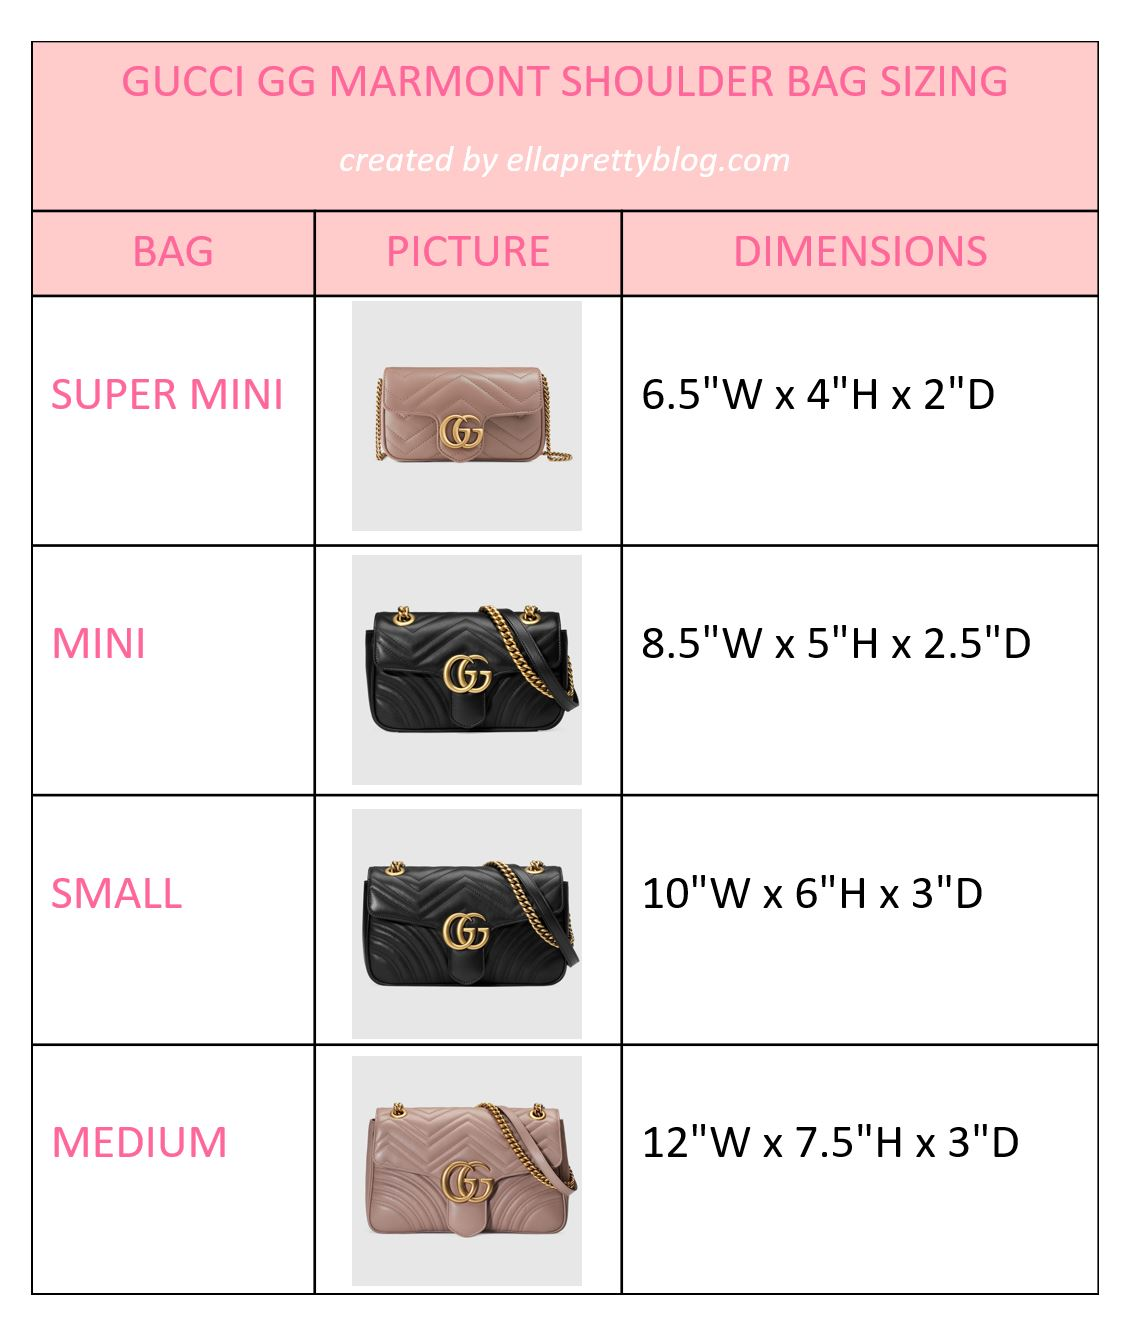 35d3afa1fda Comparing the Different Sizes of the Gucci GG Marmont Matelasse ...